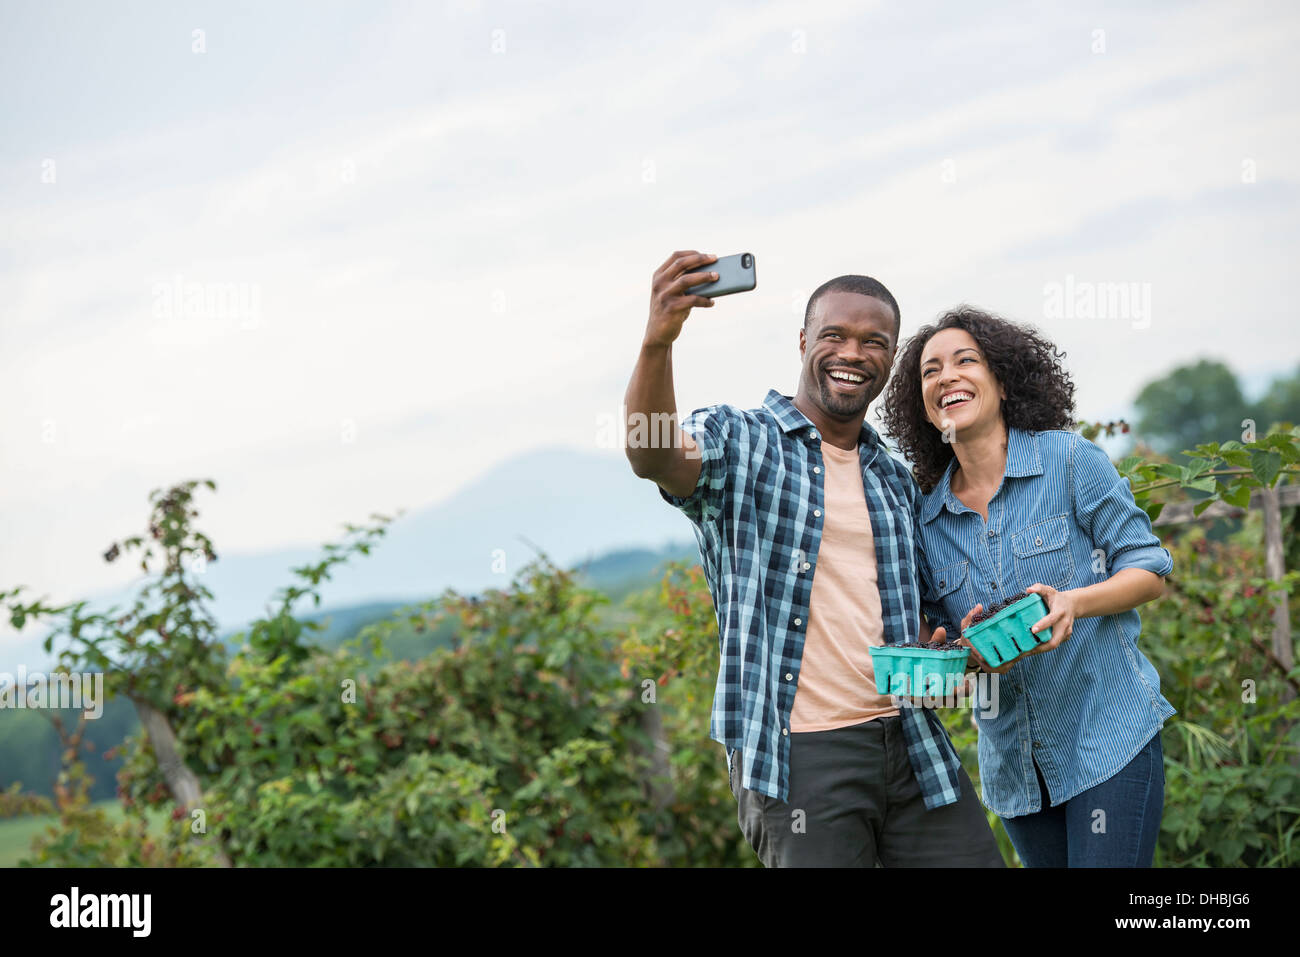 Picking blackberry fruits on an organic farm. A couple taking a selfy with a smart phone, and fruit picking. - Stock Image